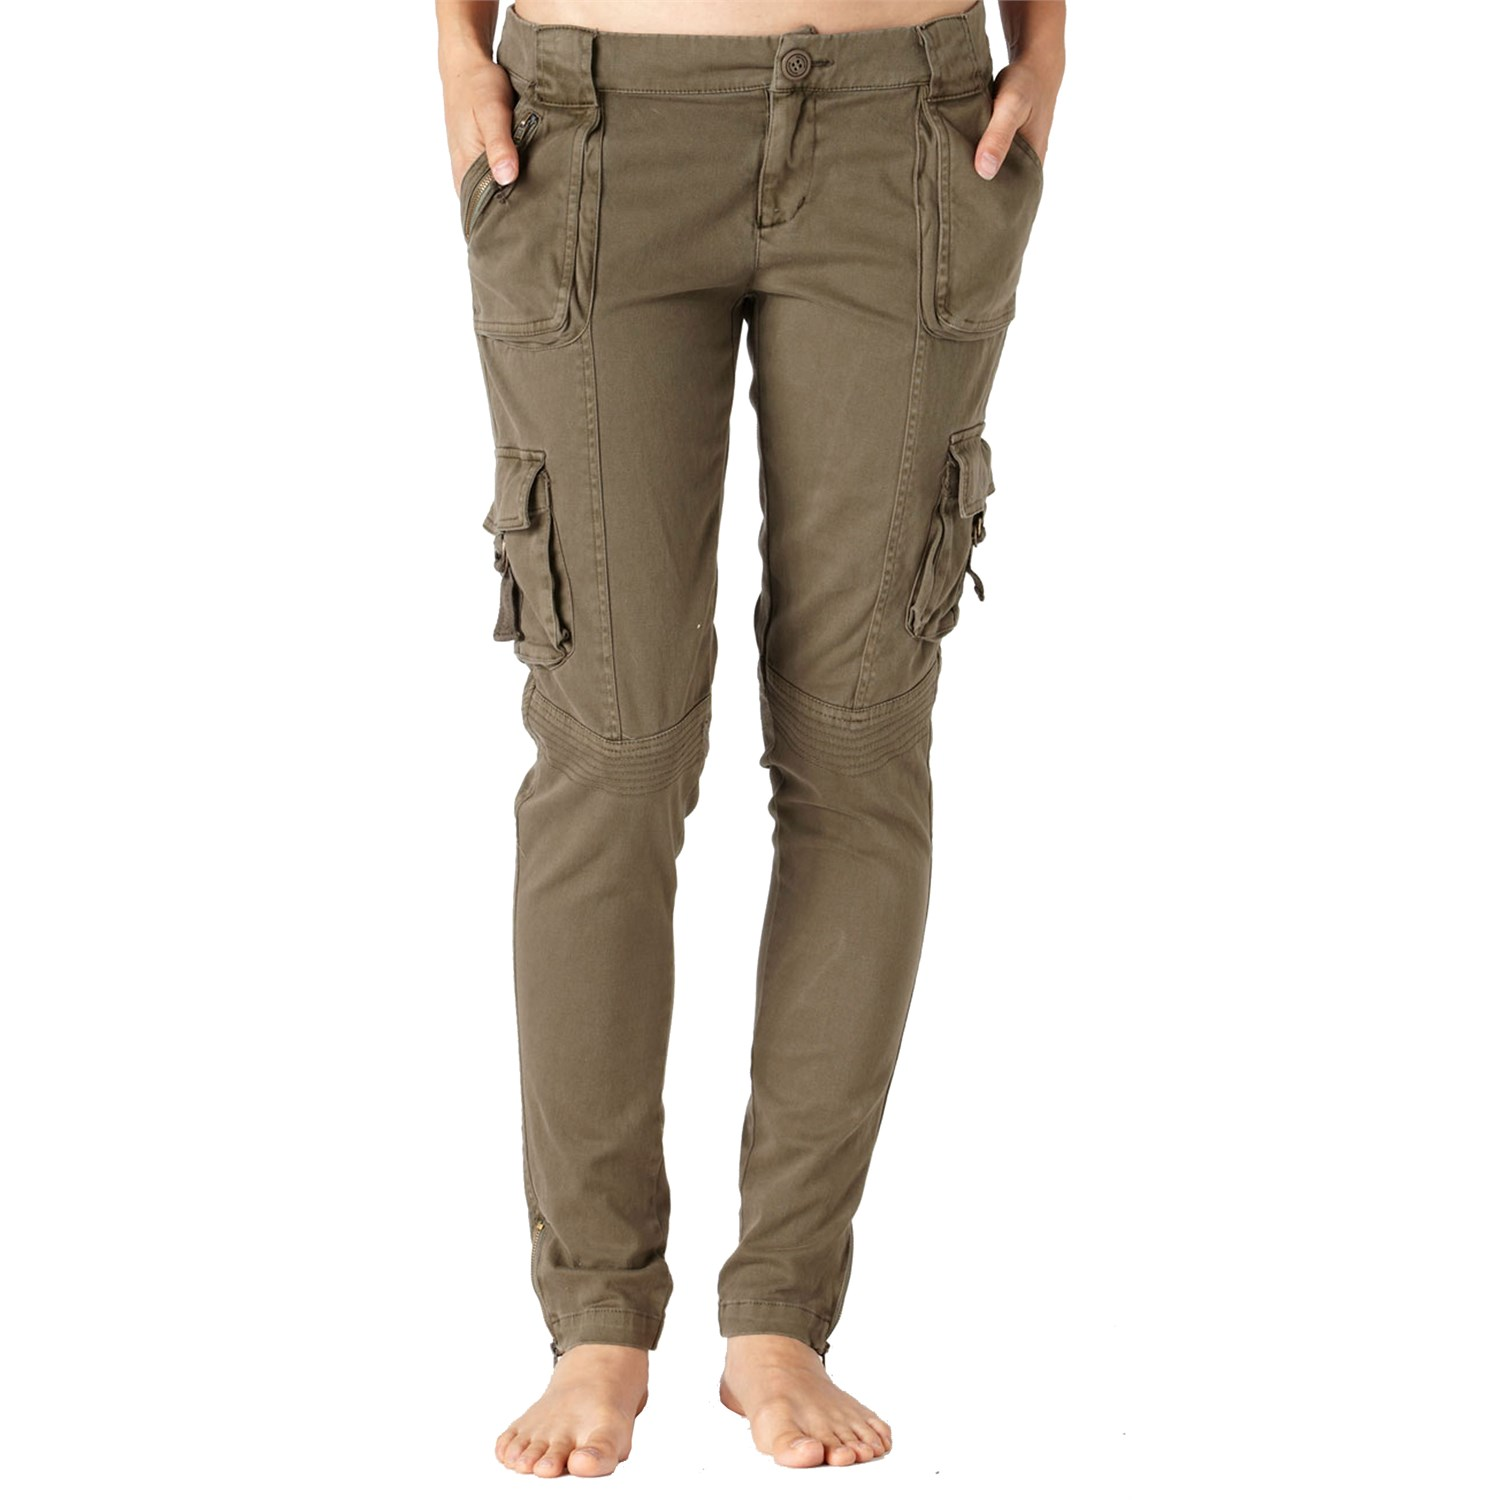 womens cargo pants with zipper pockets photo - 1